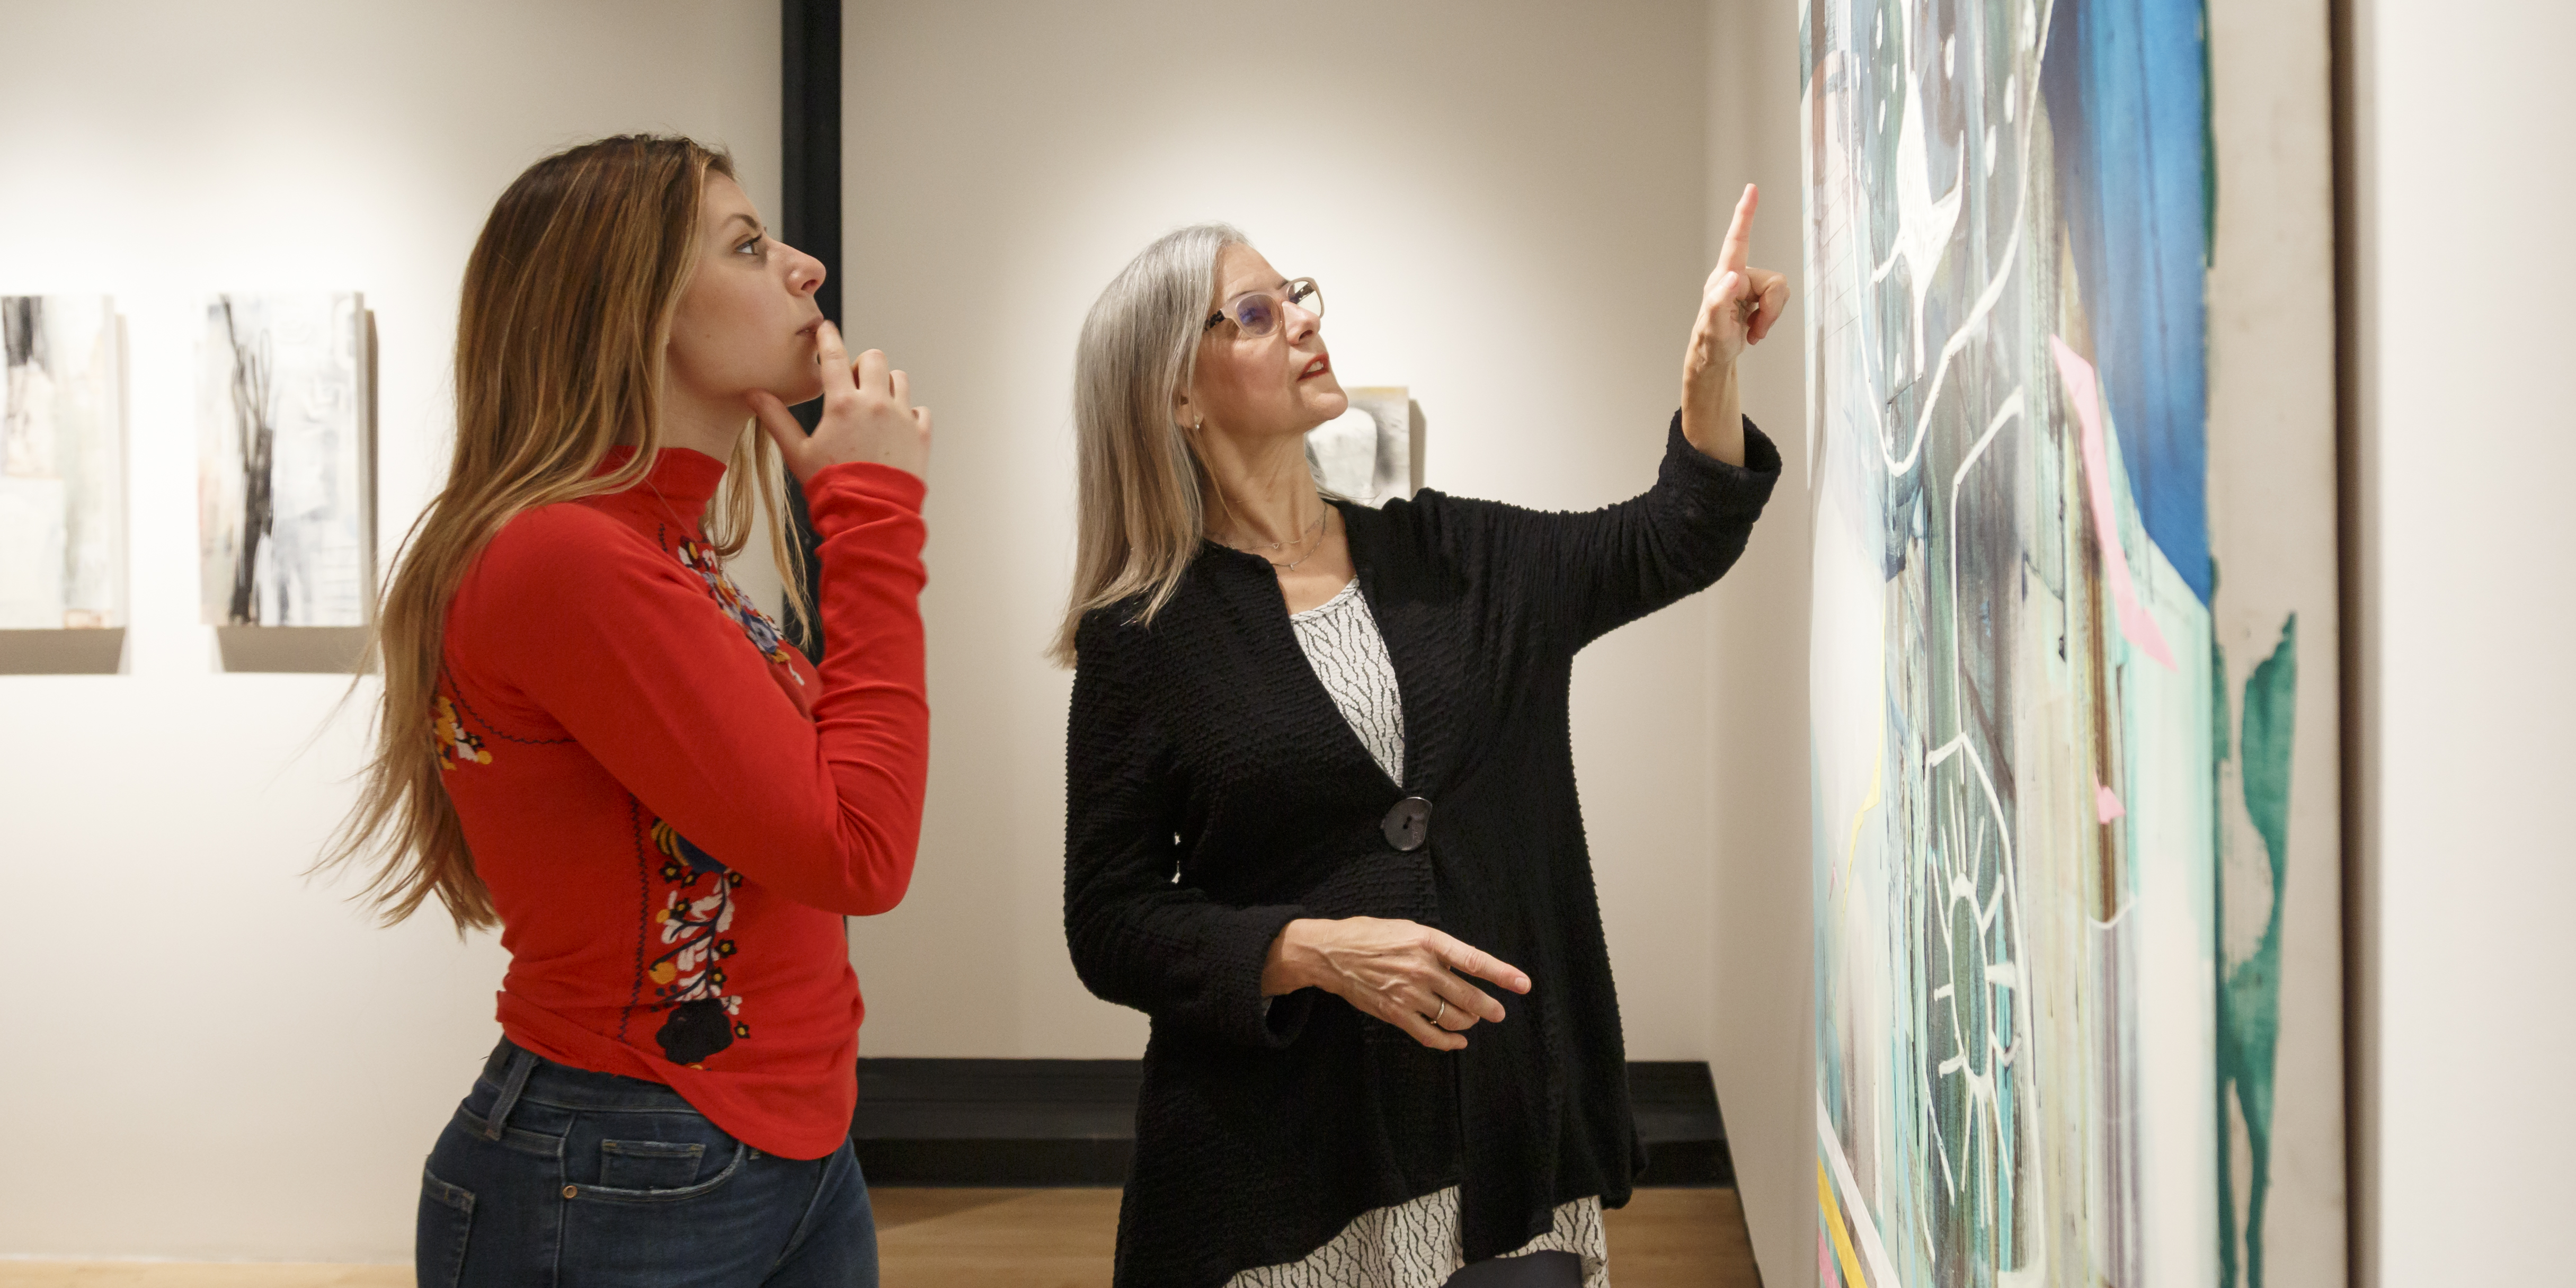 OSU Art Students Paris Myers (left) and Amy Gibson (right) find friendship, comfort and inspiration through peer relationship.